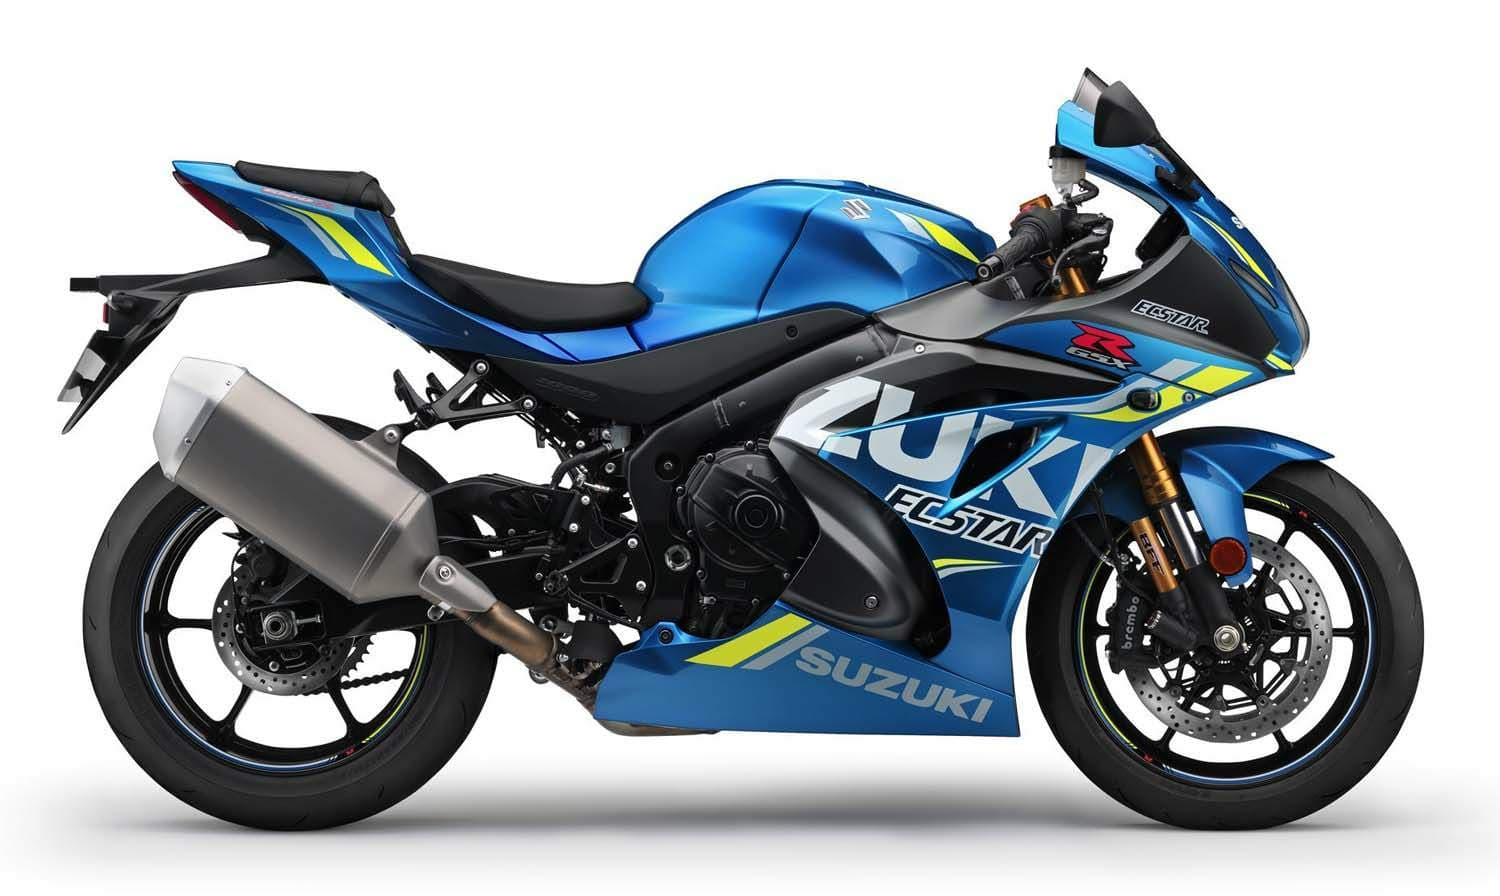 13 Suzuki Gsx R1000r 2018 Wallpapers Hd